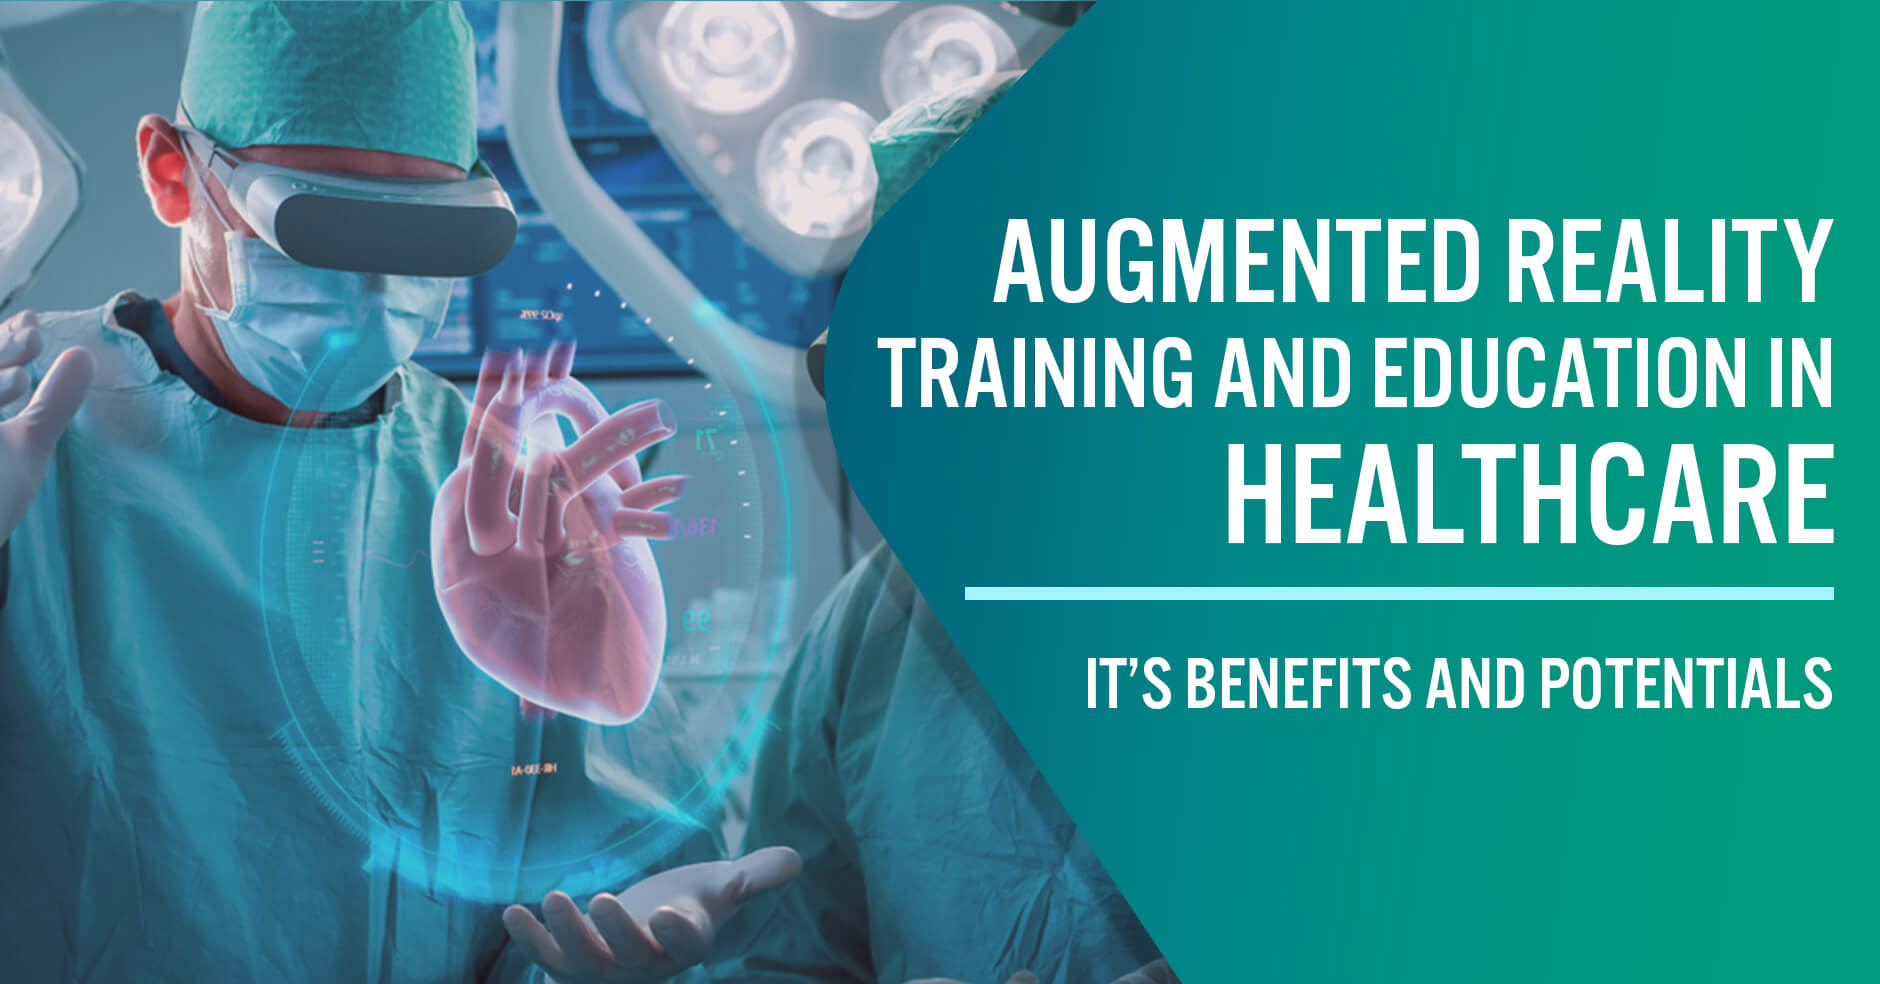 Augmented Reality Training and Education in Healthcare: It's Benefits and Potentials